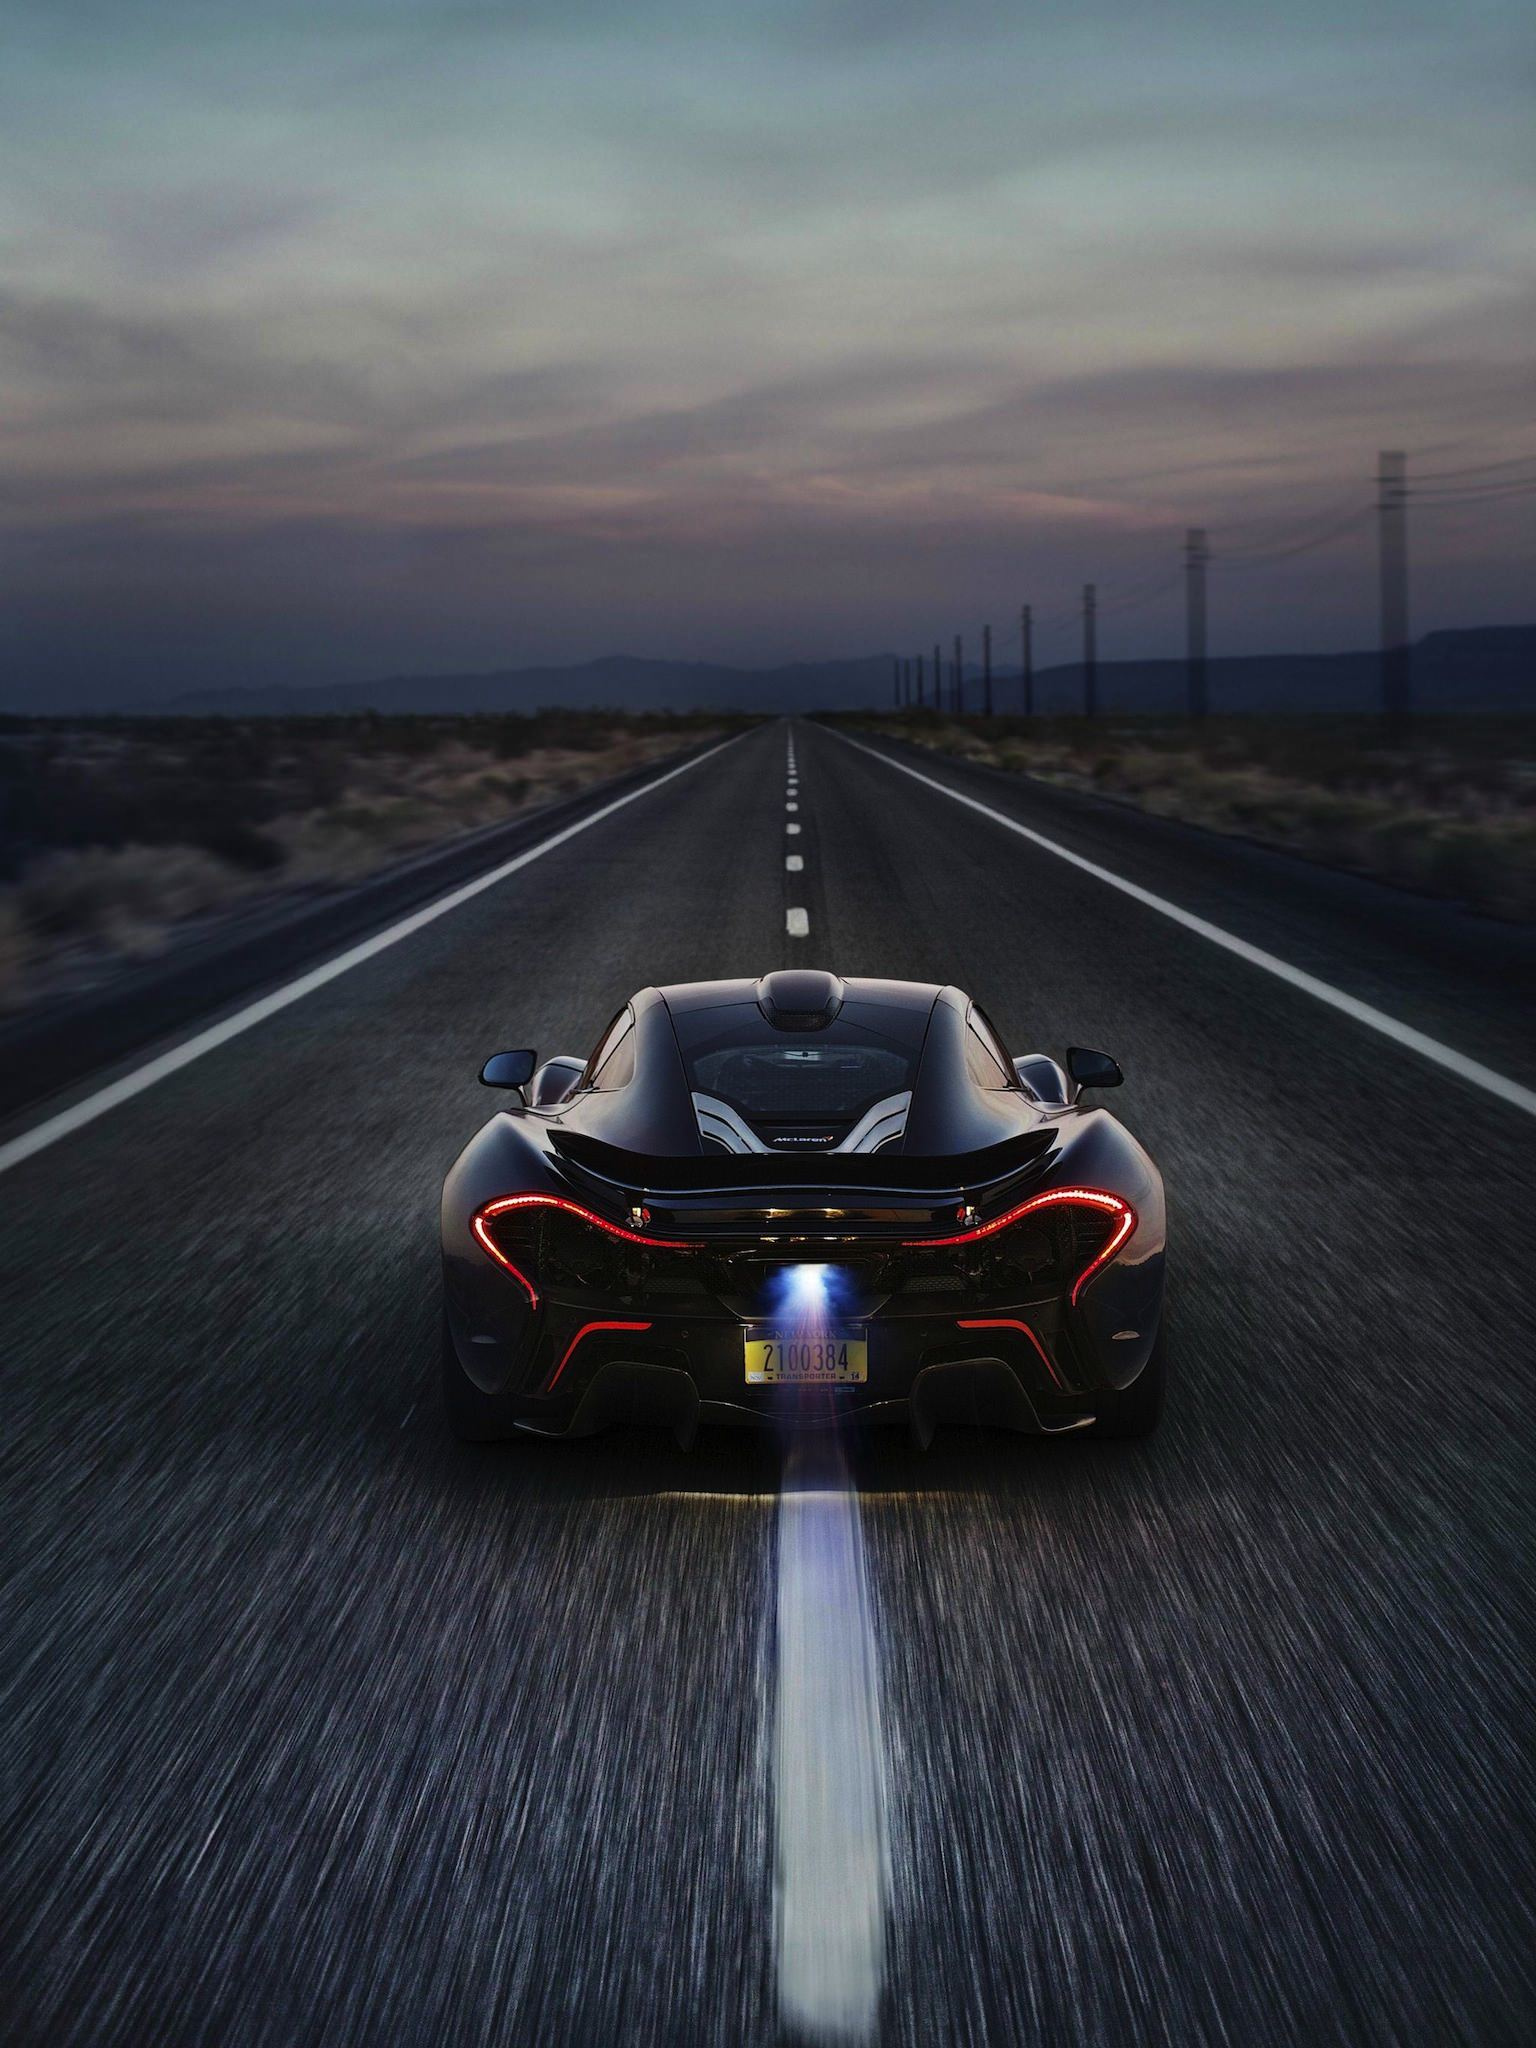 Mclaren P1 Iphone Ipad Wallpaper